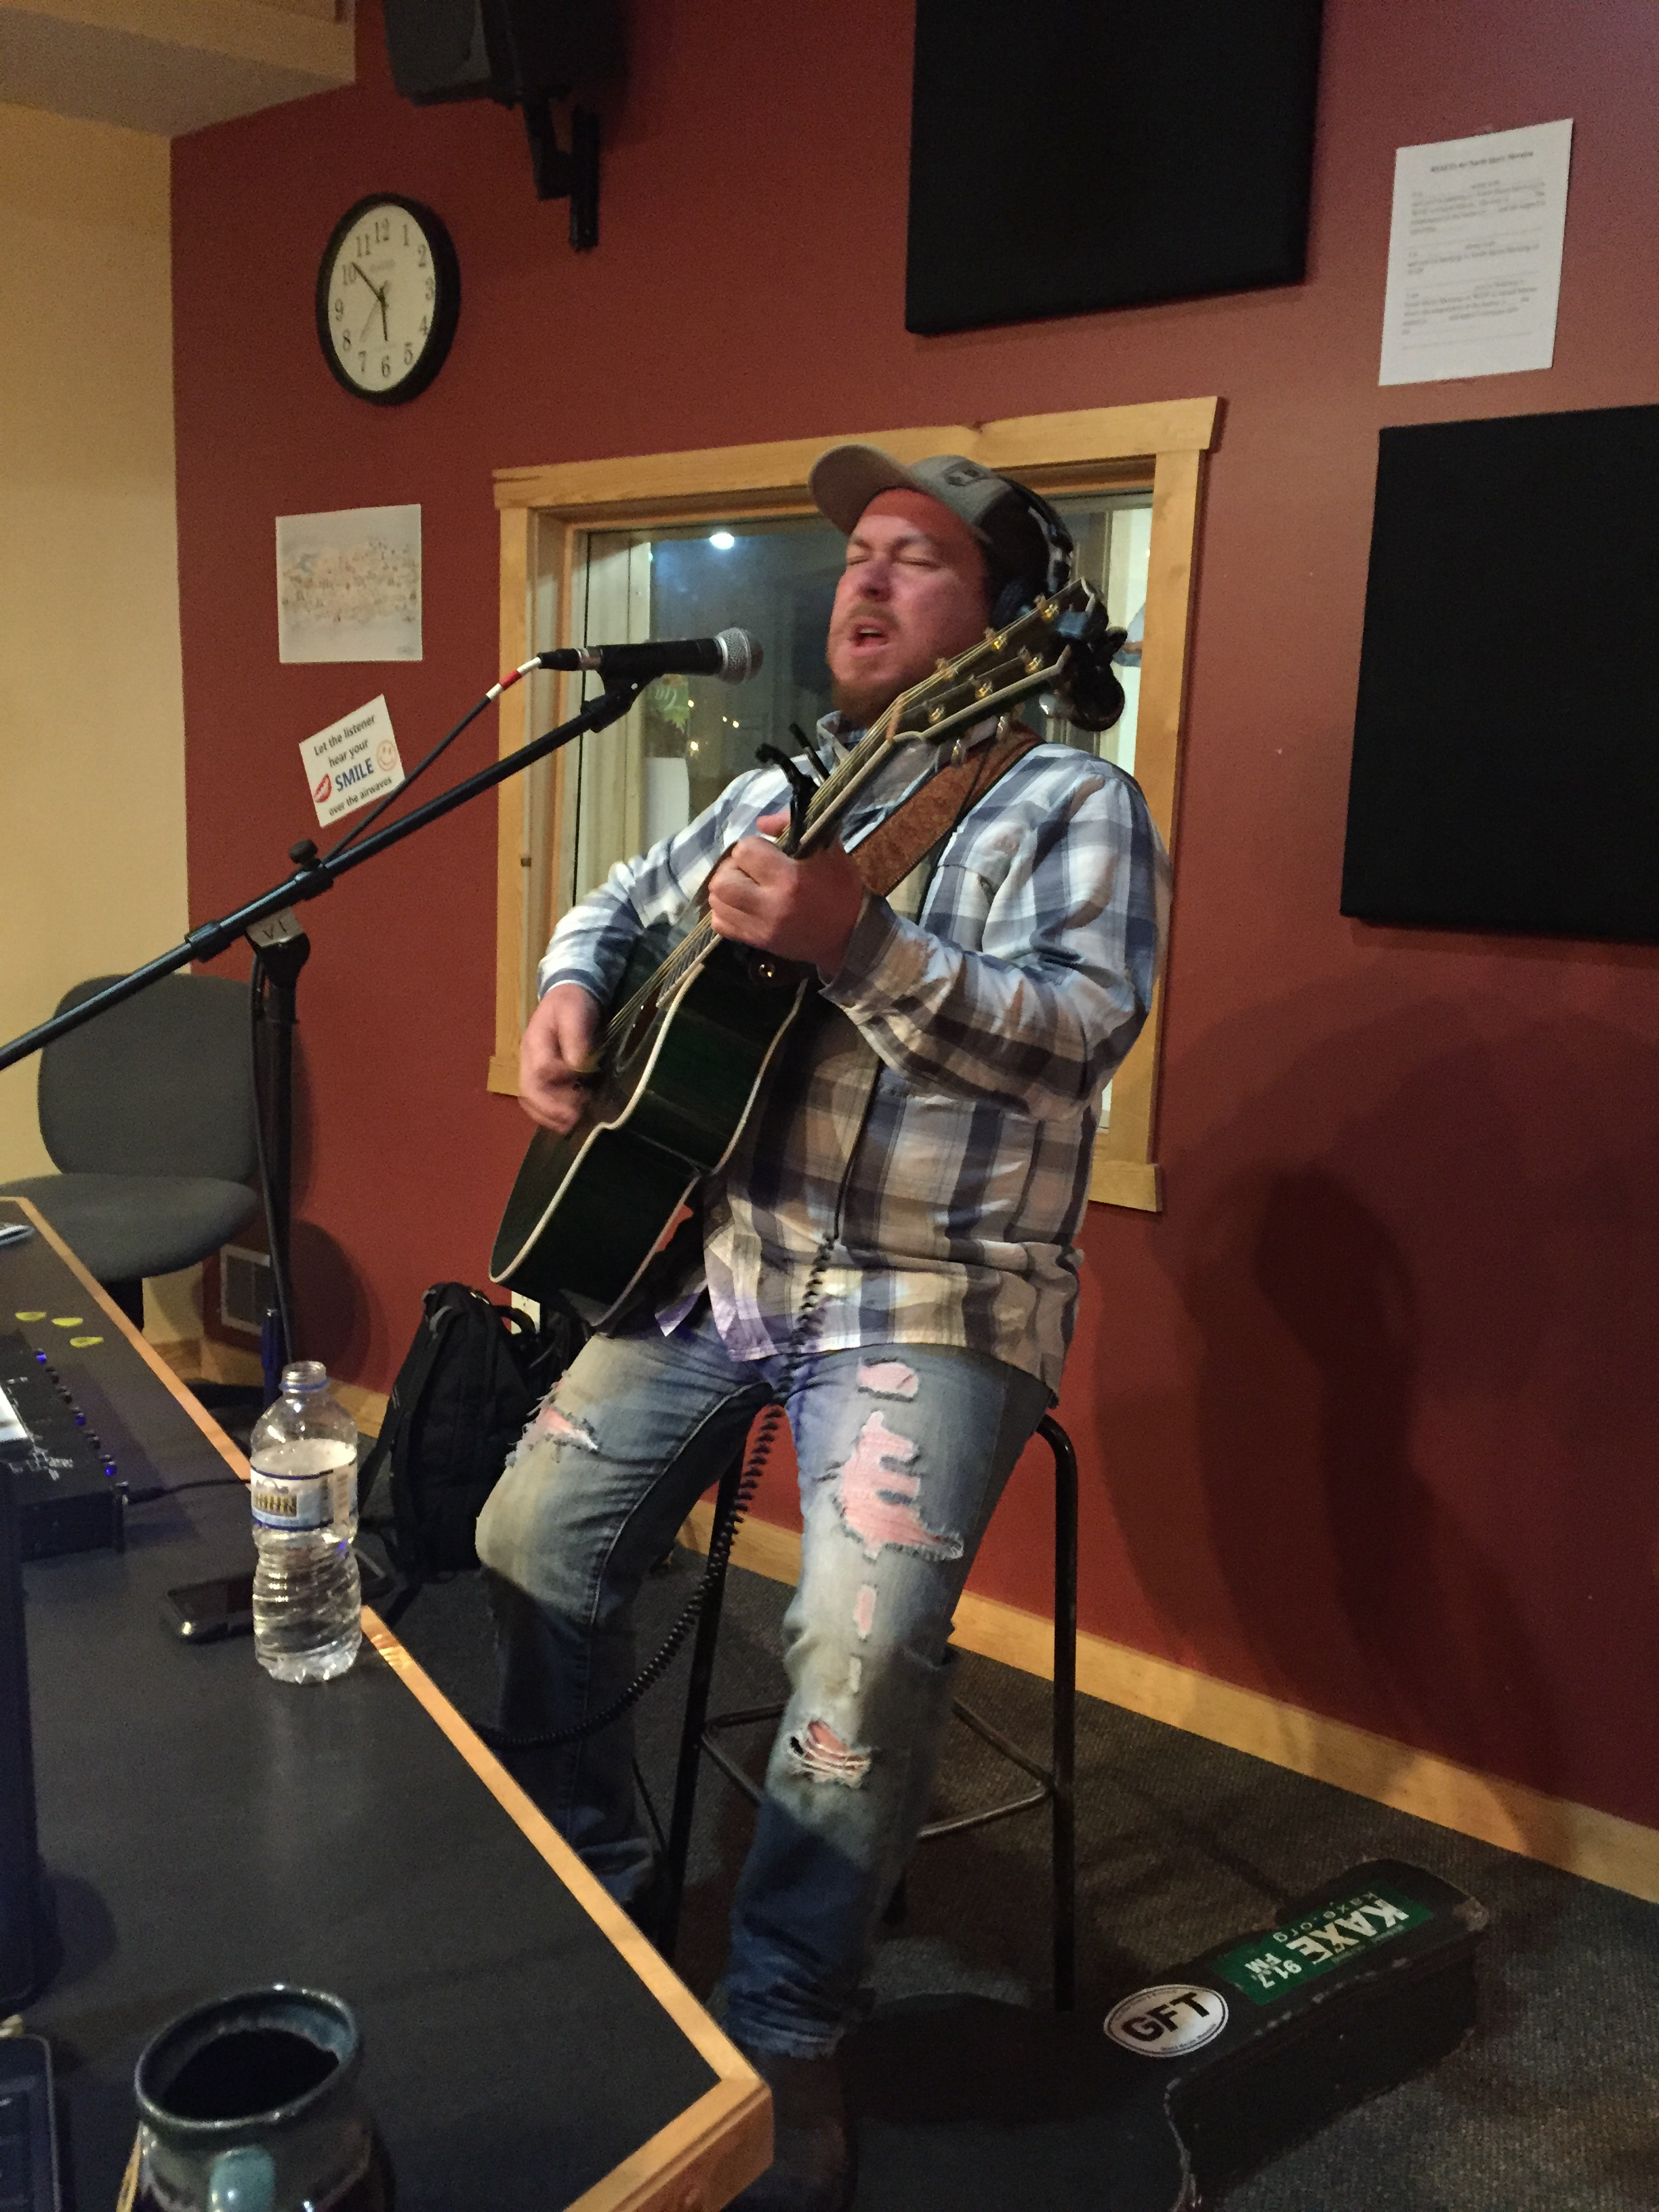 Timmy Haus brings wide variety of music to The Roadhouse